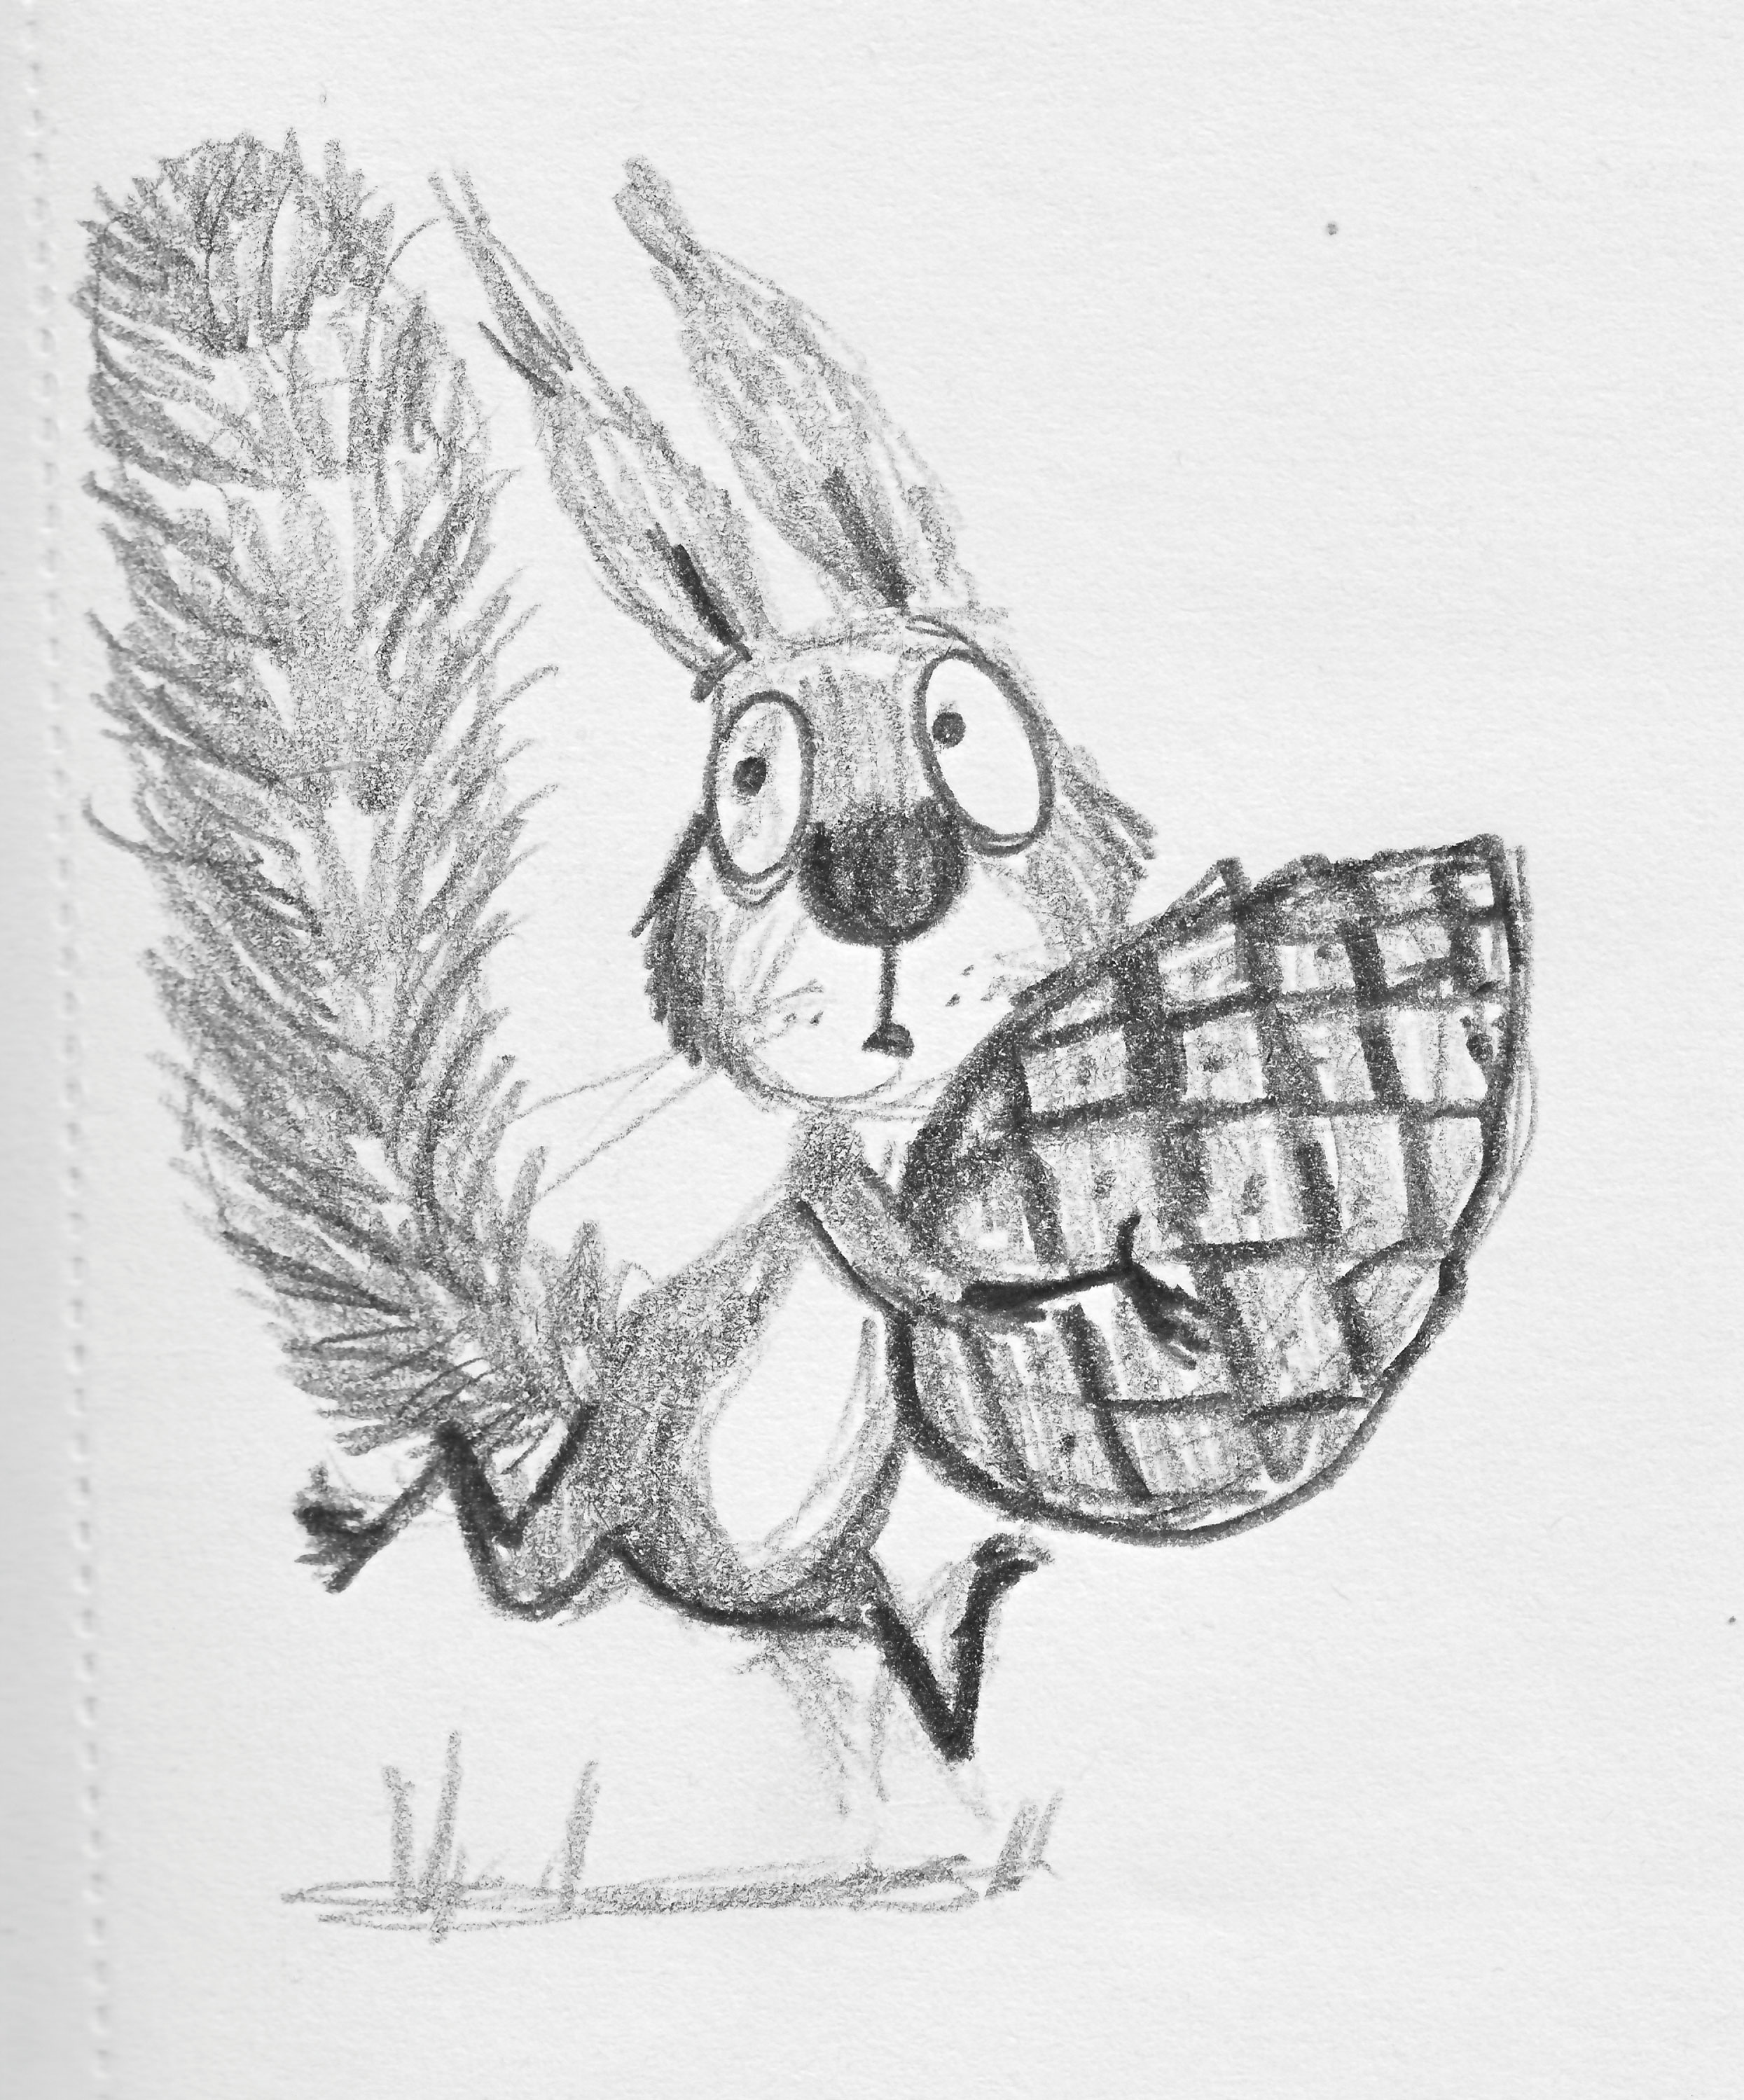 Sketch of Cyril running holding a pinecone